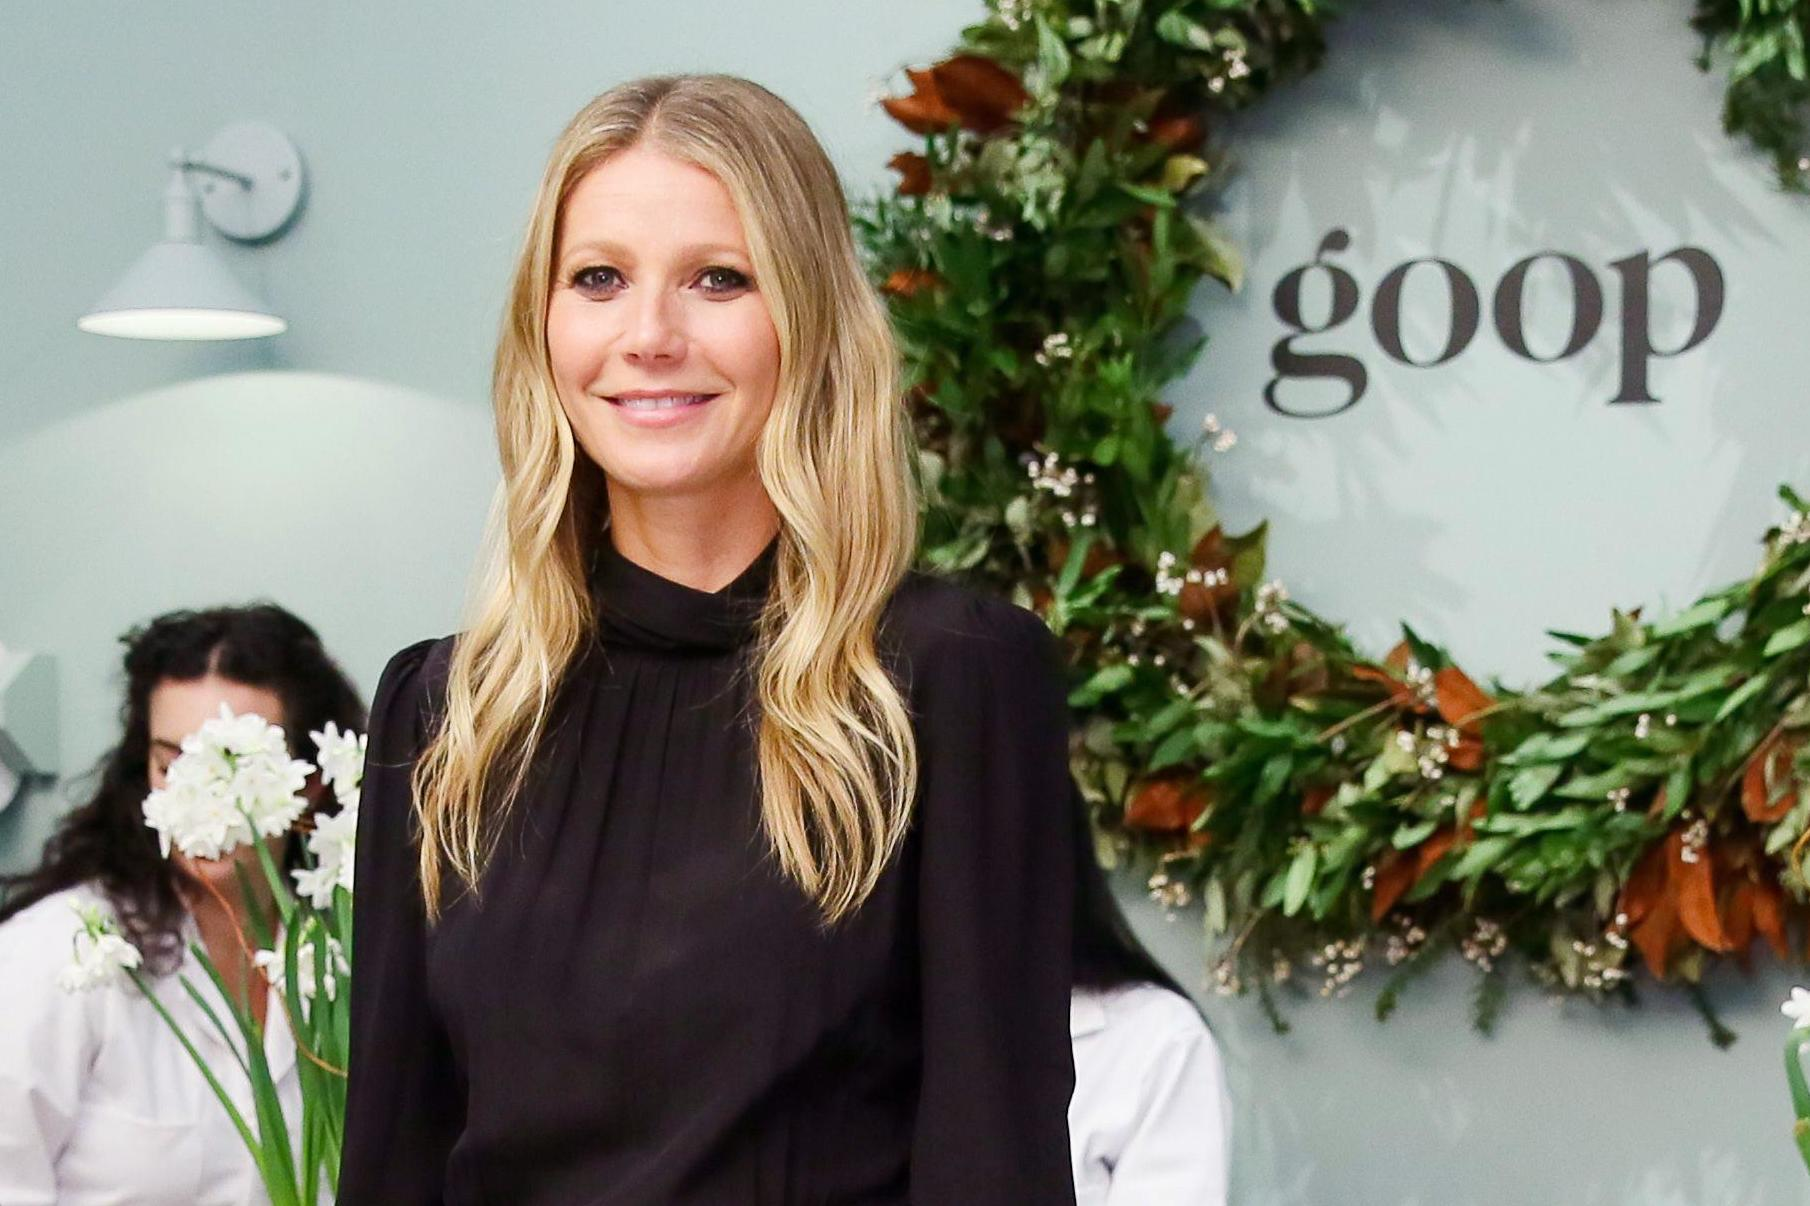 Gwyneth Paltrow says criticism of Goop is deeply unfair advise